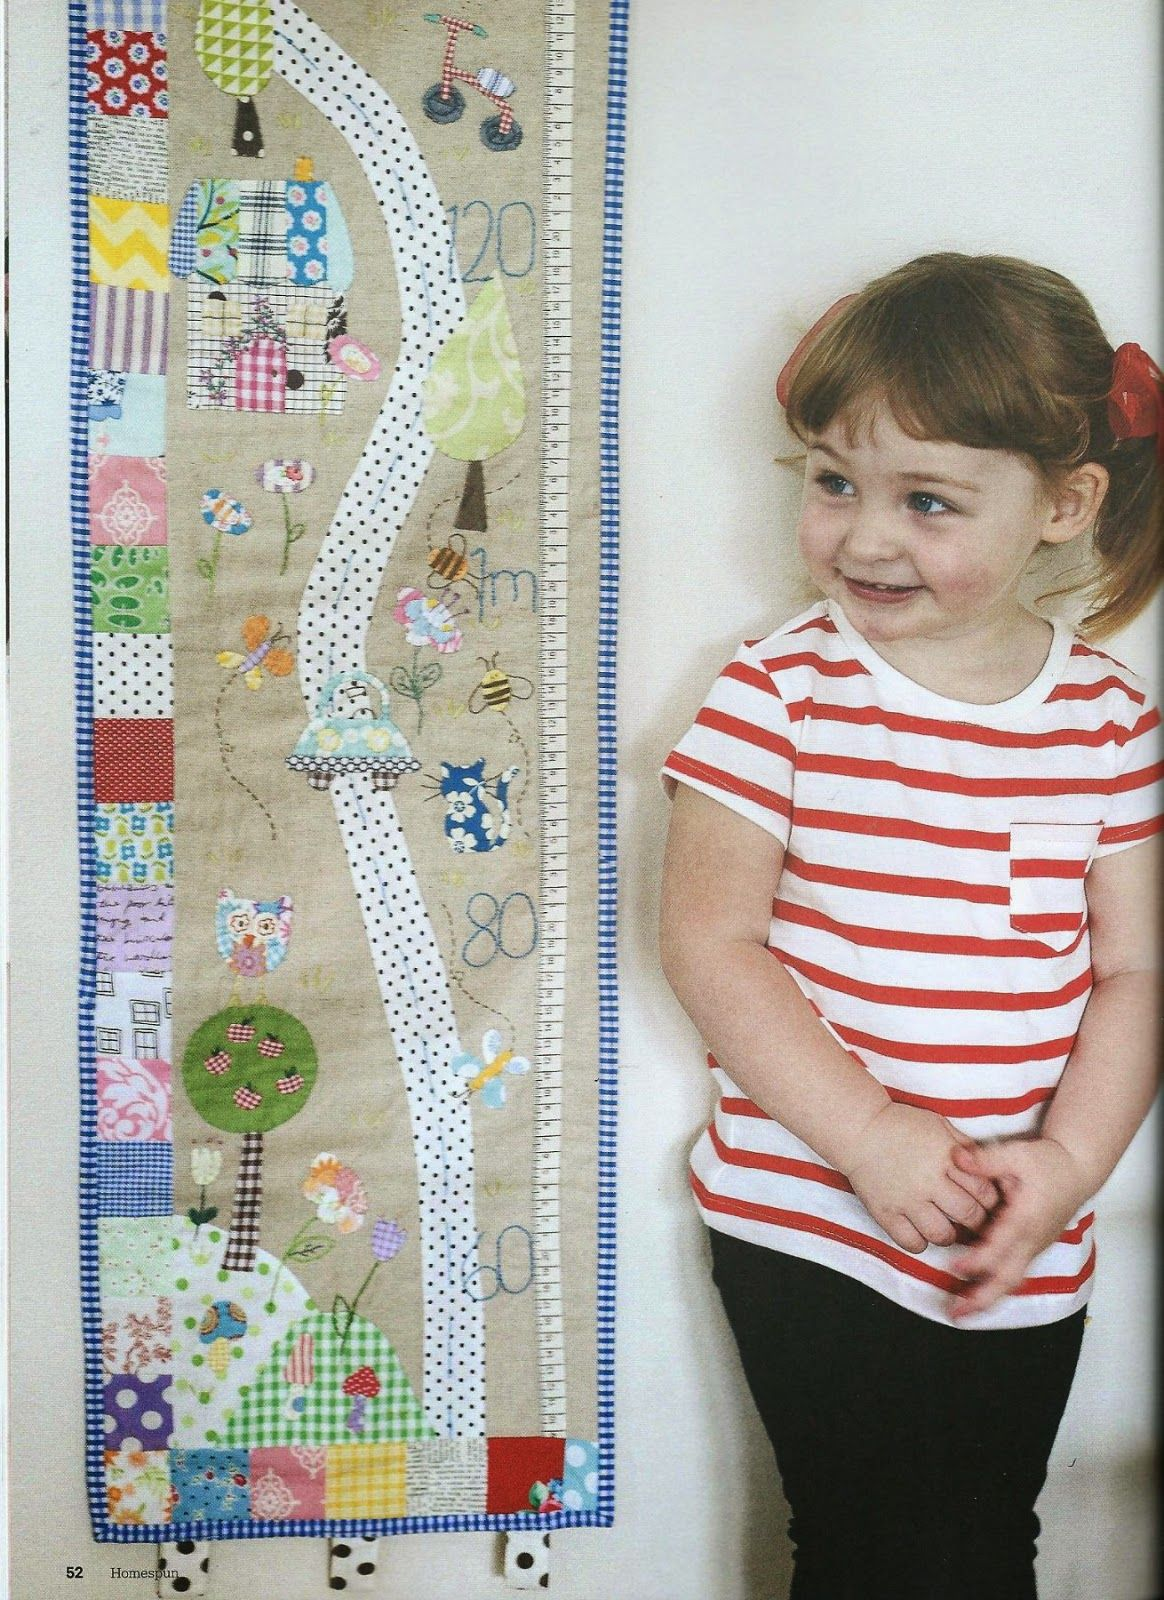 Growth chart fabric growth chart nursery decor personalised growth chart fabric growth chart nursery decor personalised growth chart kids decor geenschuldenfo Images